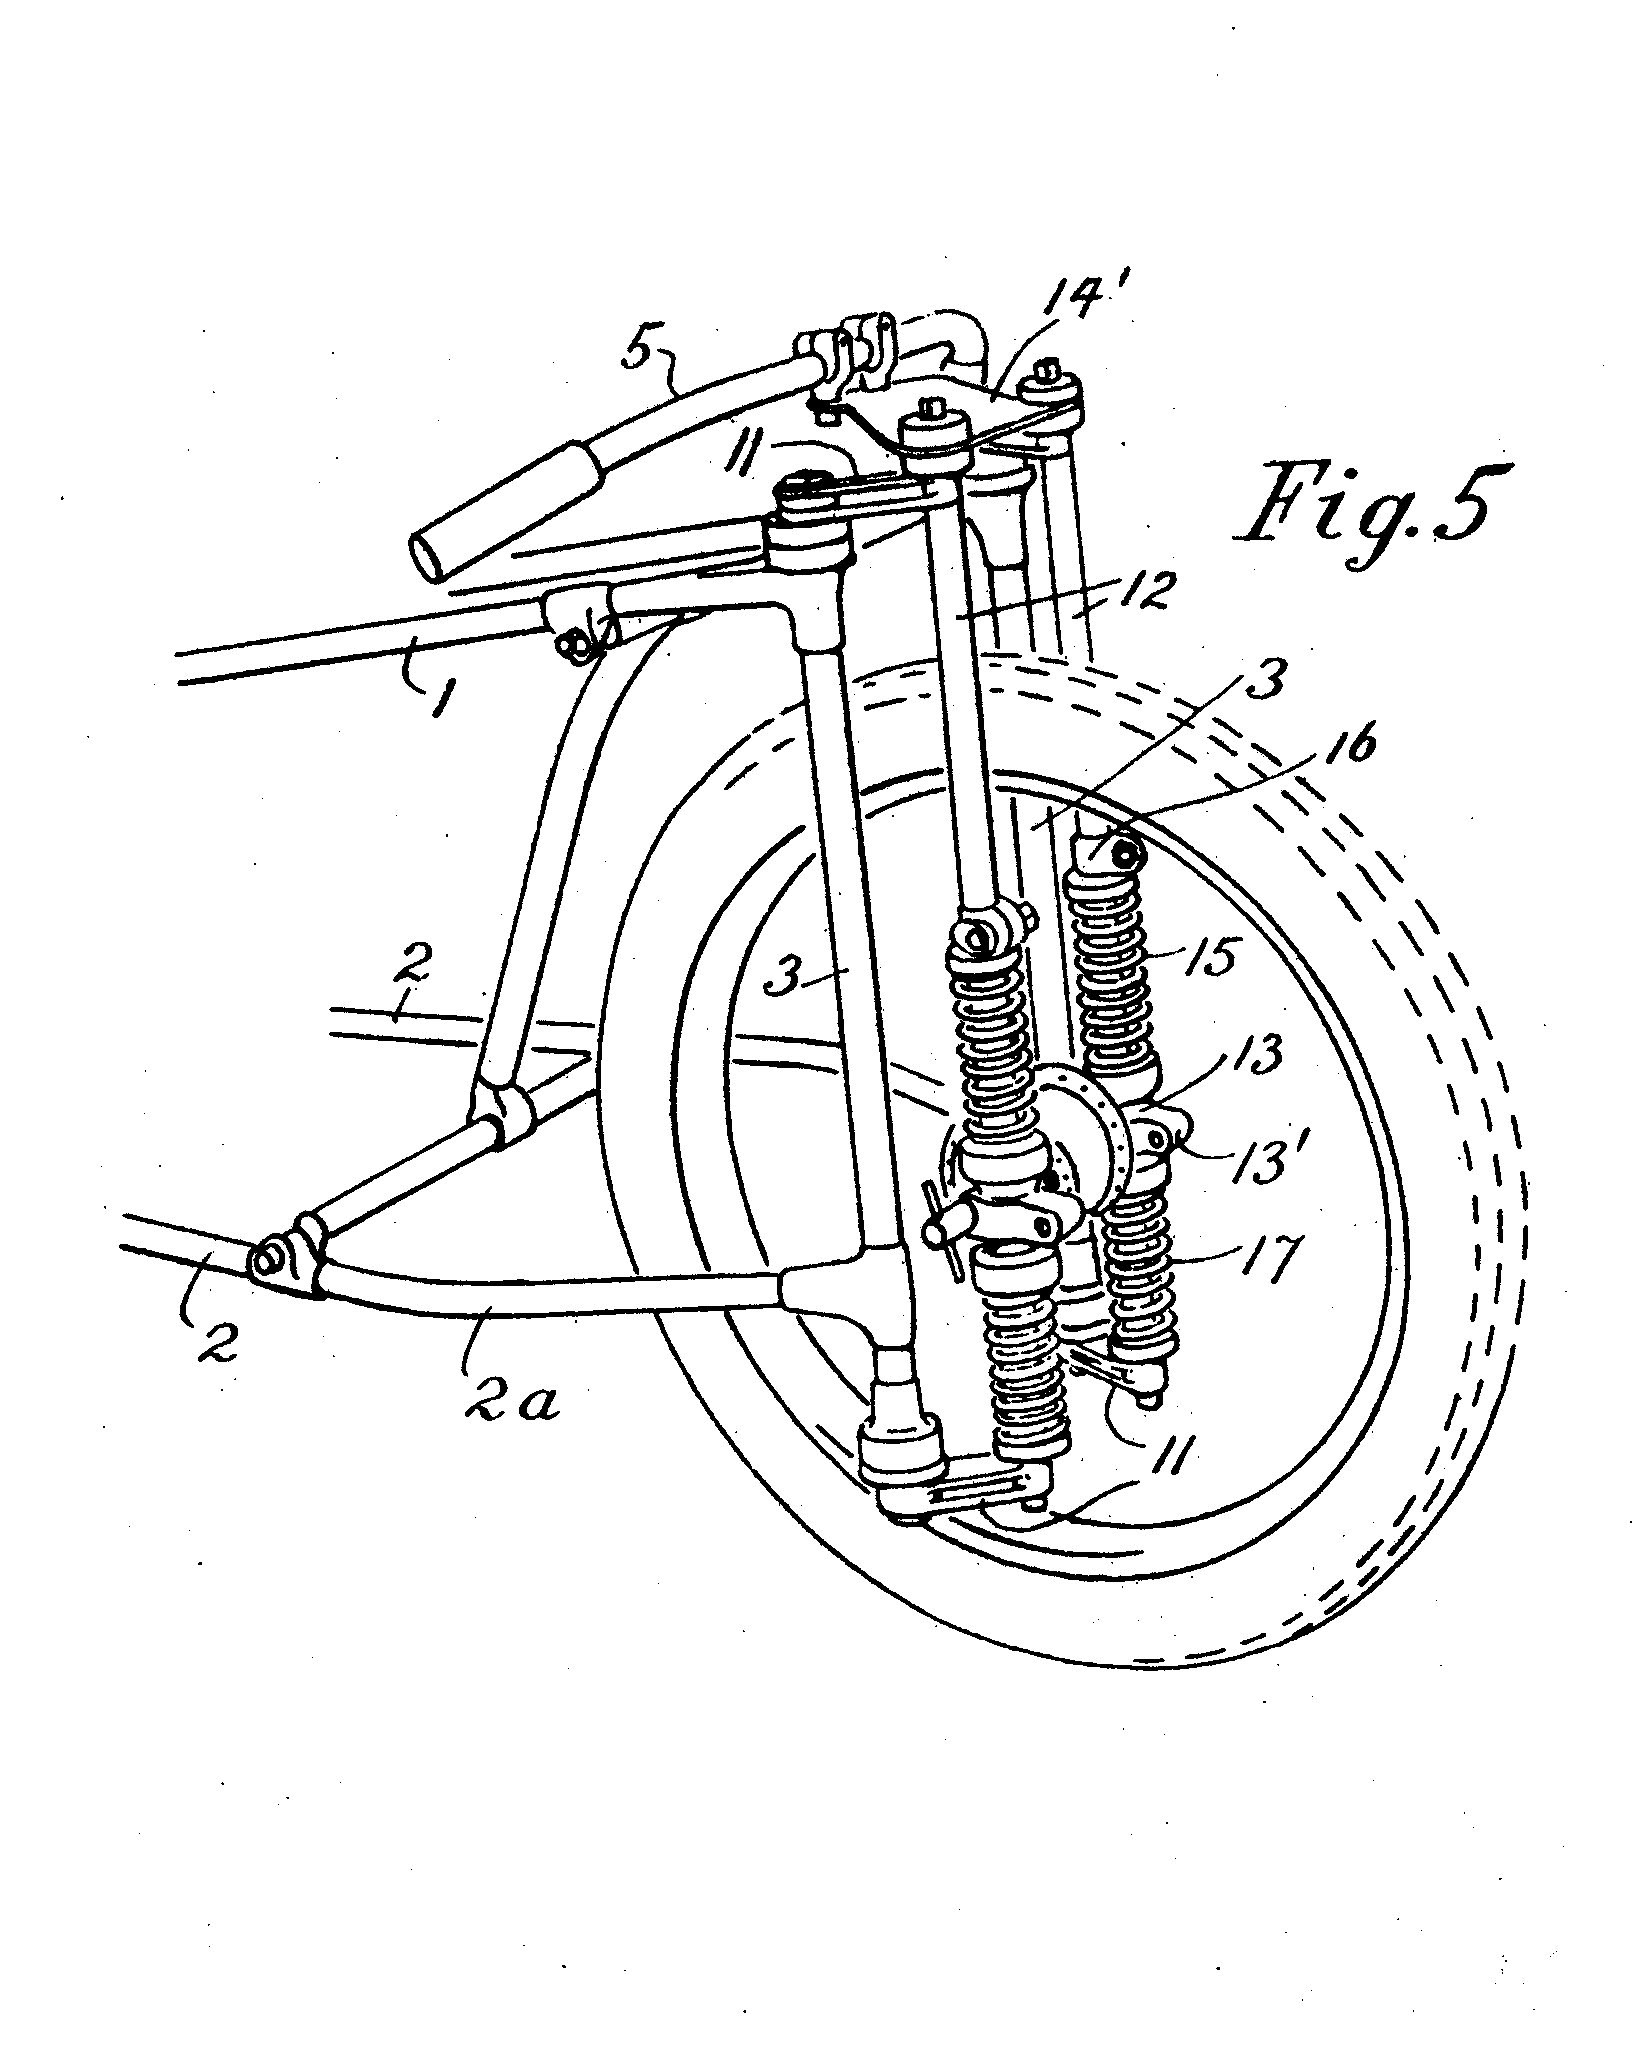 the osborn engineering pany or o e c greg williams Ford Mustang 3.8 Engine Diagram a patent drawing right shows the unique duplex steering system devised by o e c engineer frederick wood a separate technical drawing left reveals the